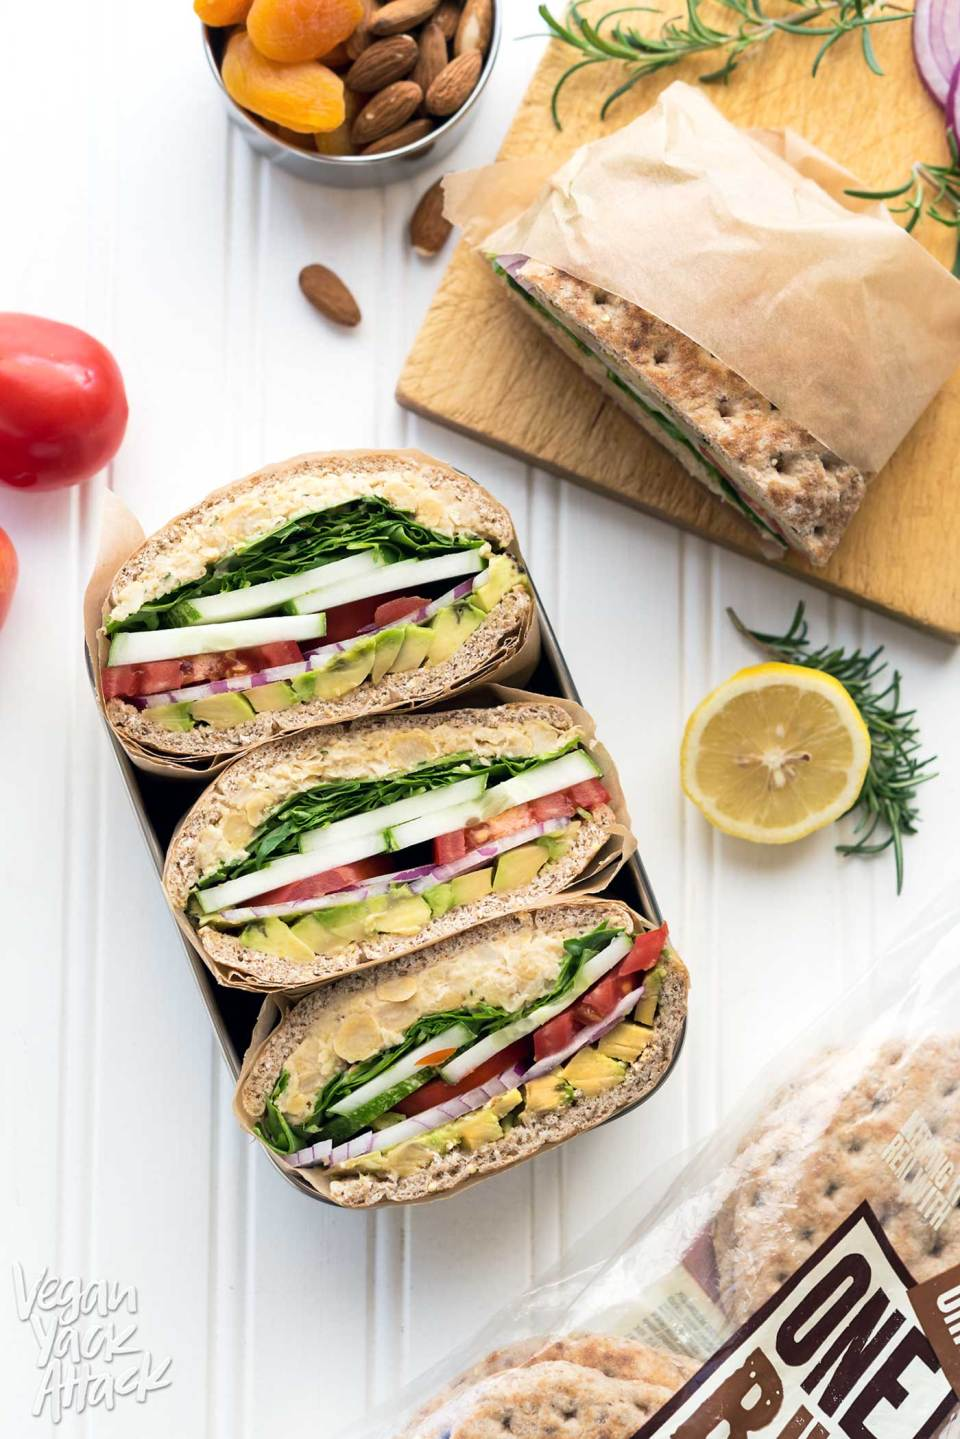 Rosemary Chickpea Salad Sandwich: Here's a back-to-school-ready lunch idea that's easy and delicious! #vegan #soyfree #nutfree